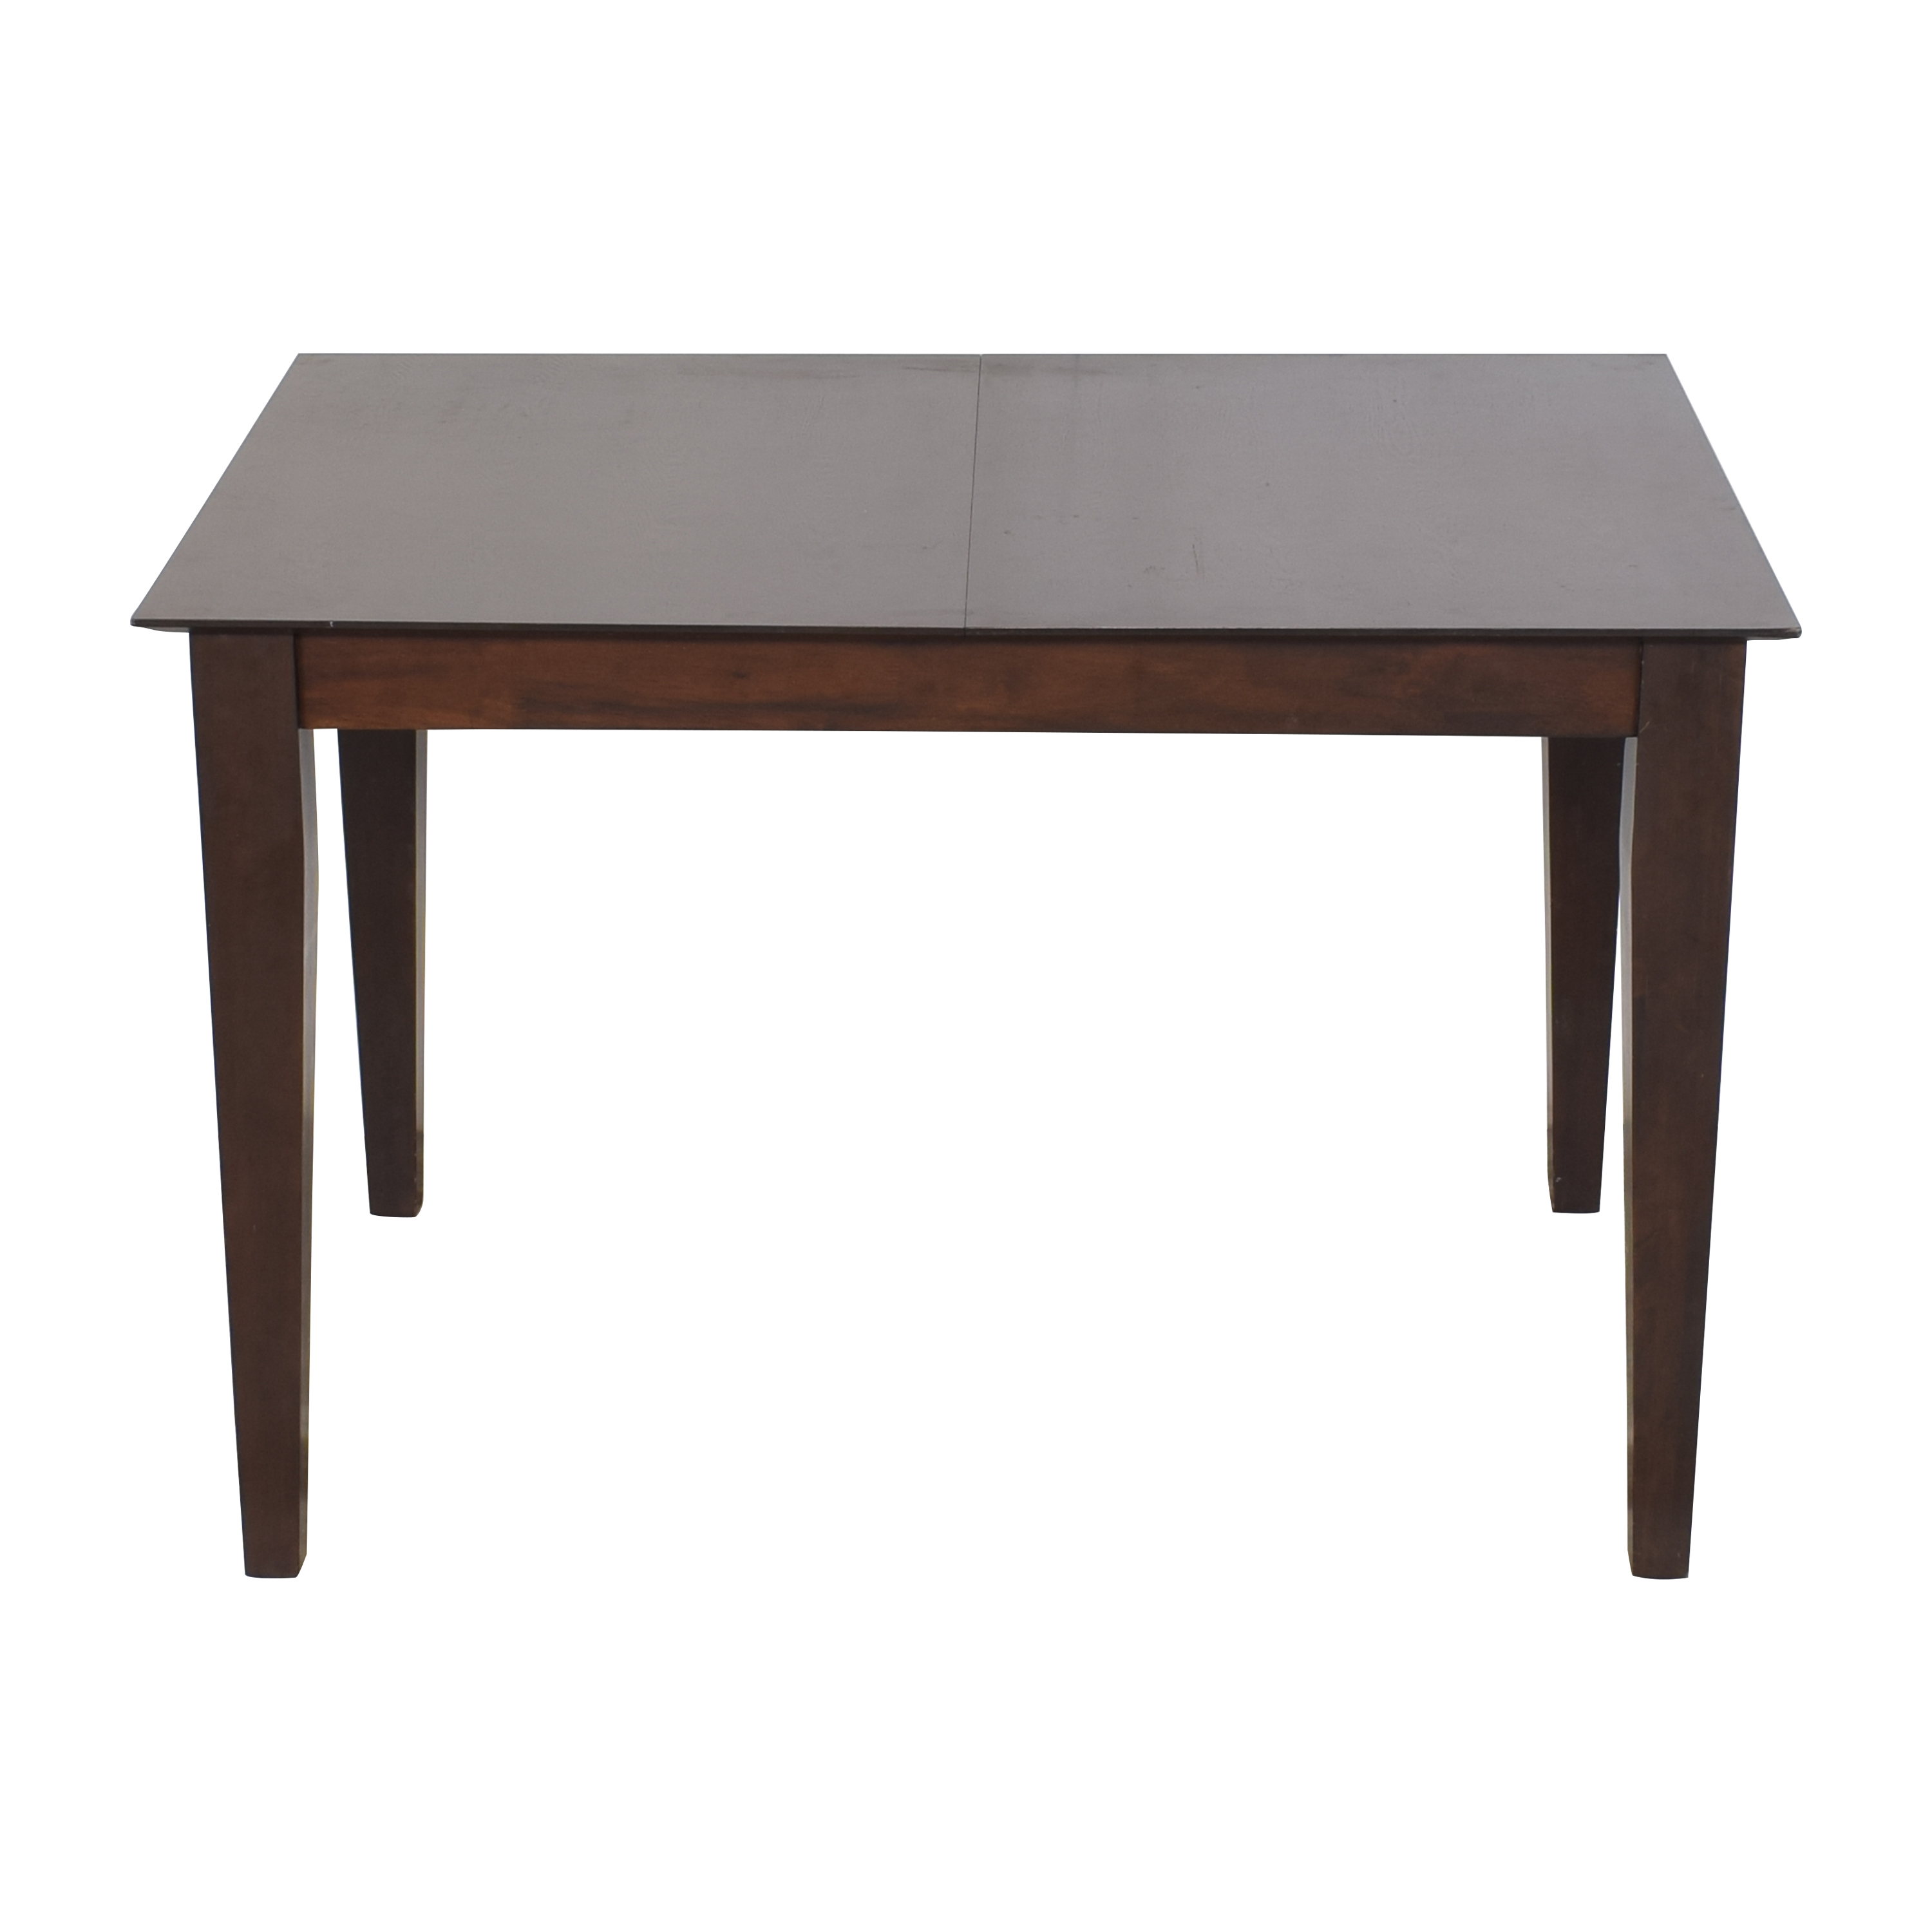 Jofran Jofran Extendable Counter Height Dining Table pa